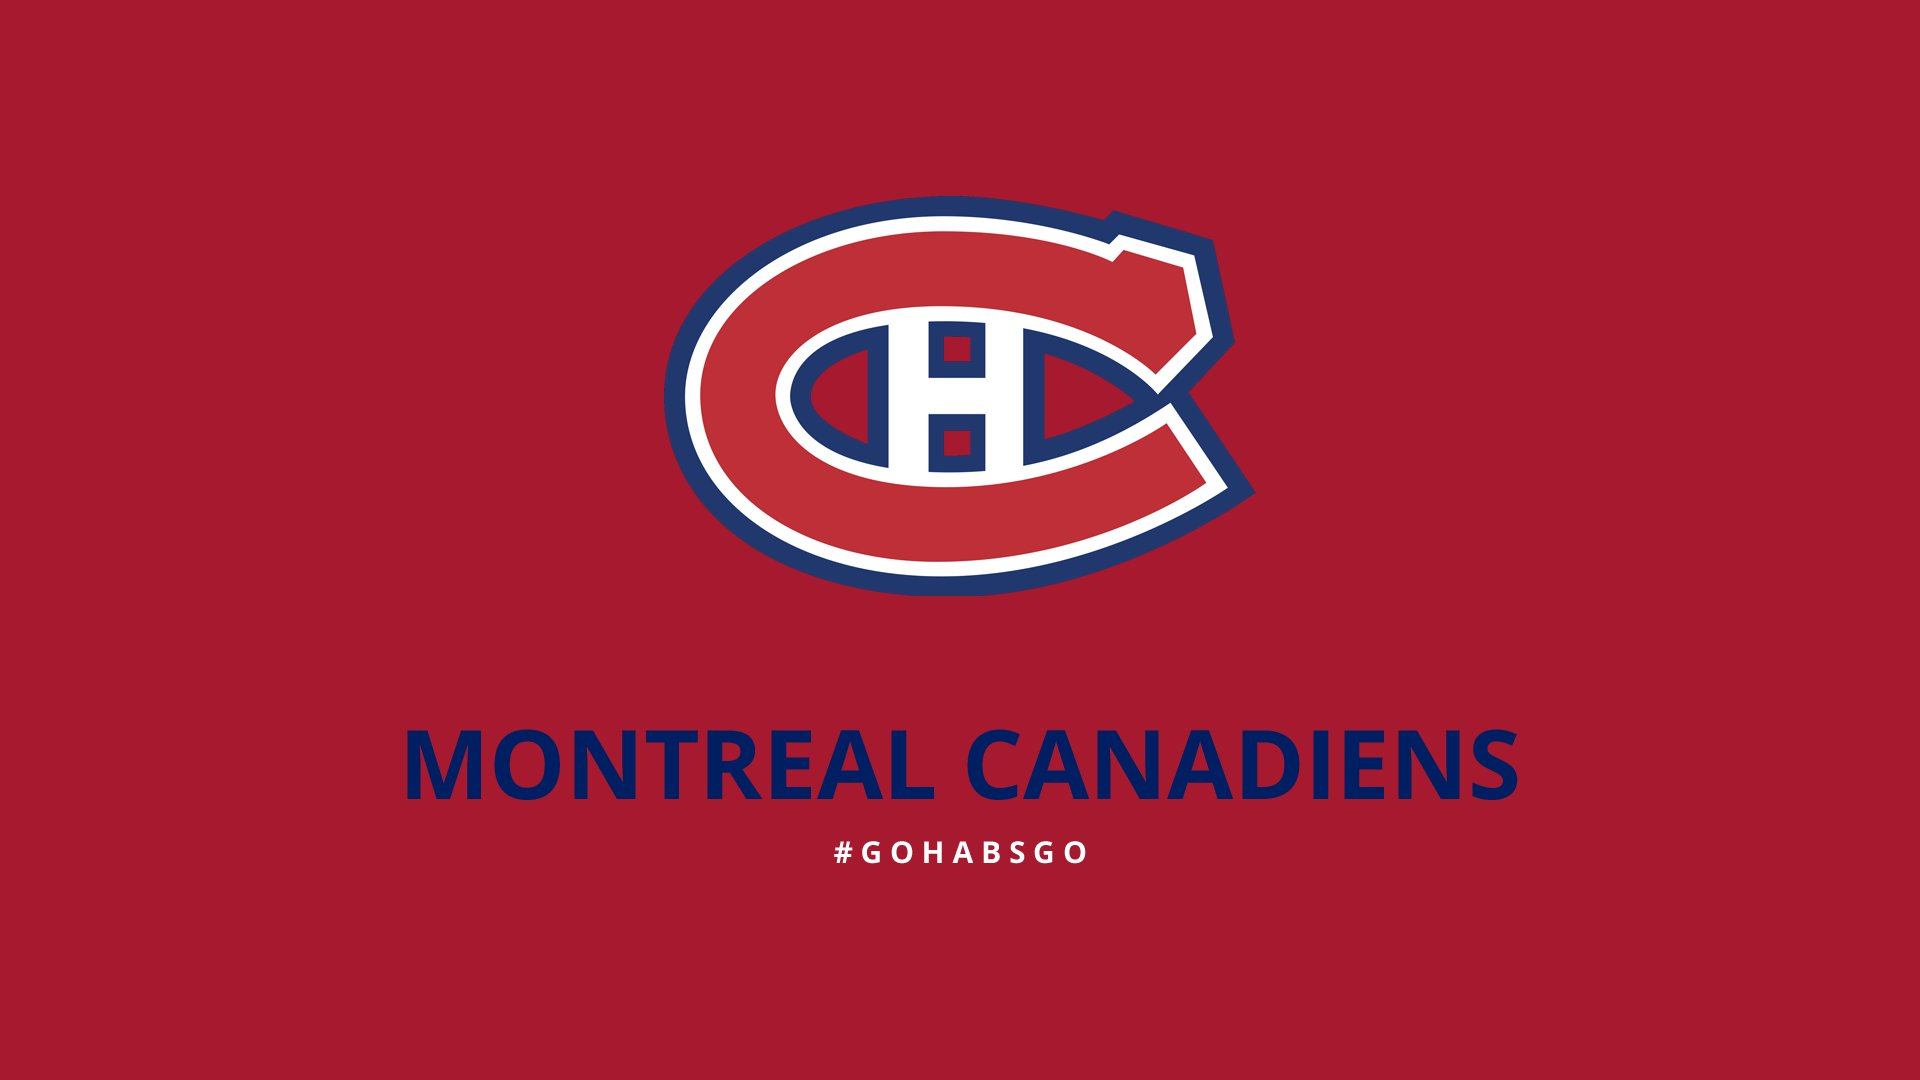 Montreal canadiens wallpapers desktop wallpapersafari - Canadiens hockey logo ...